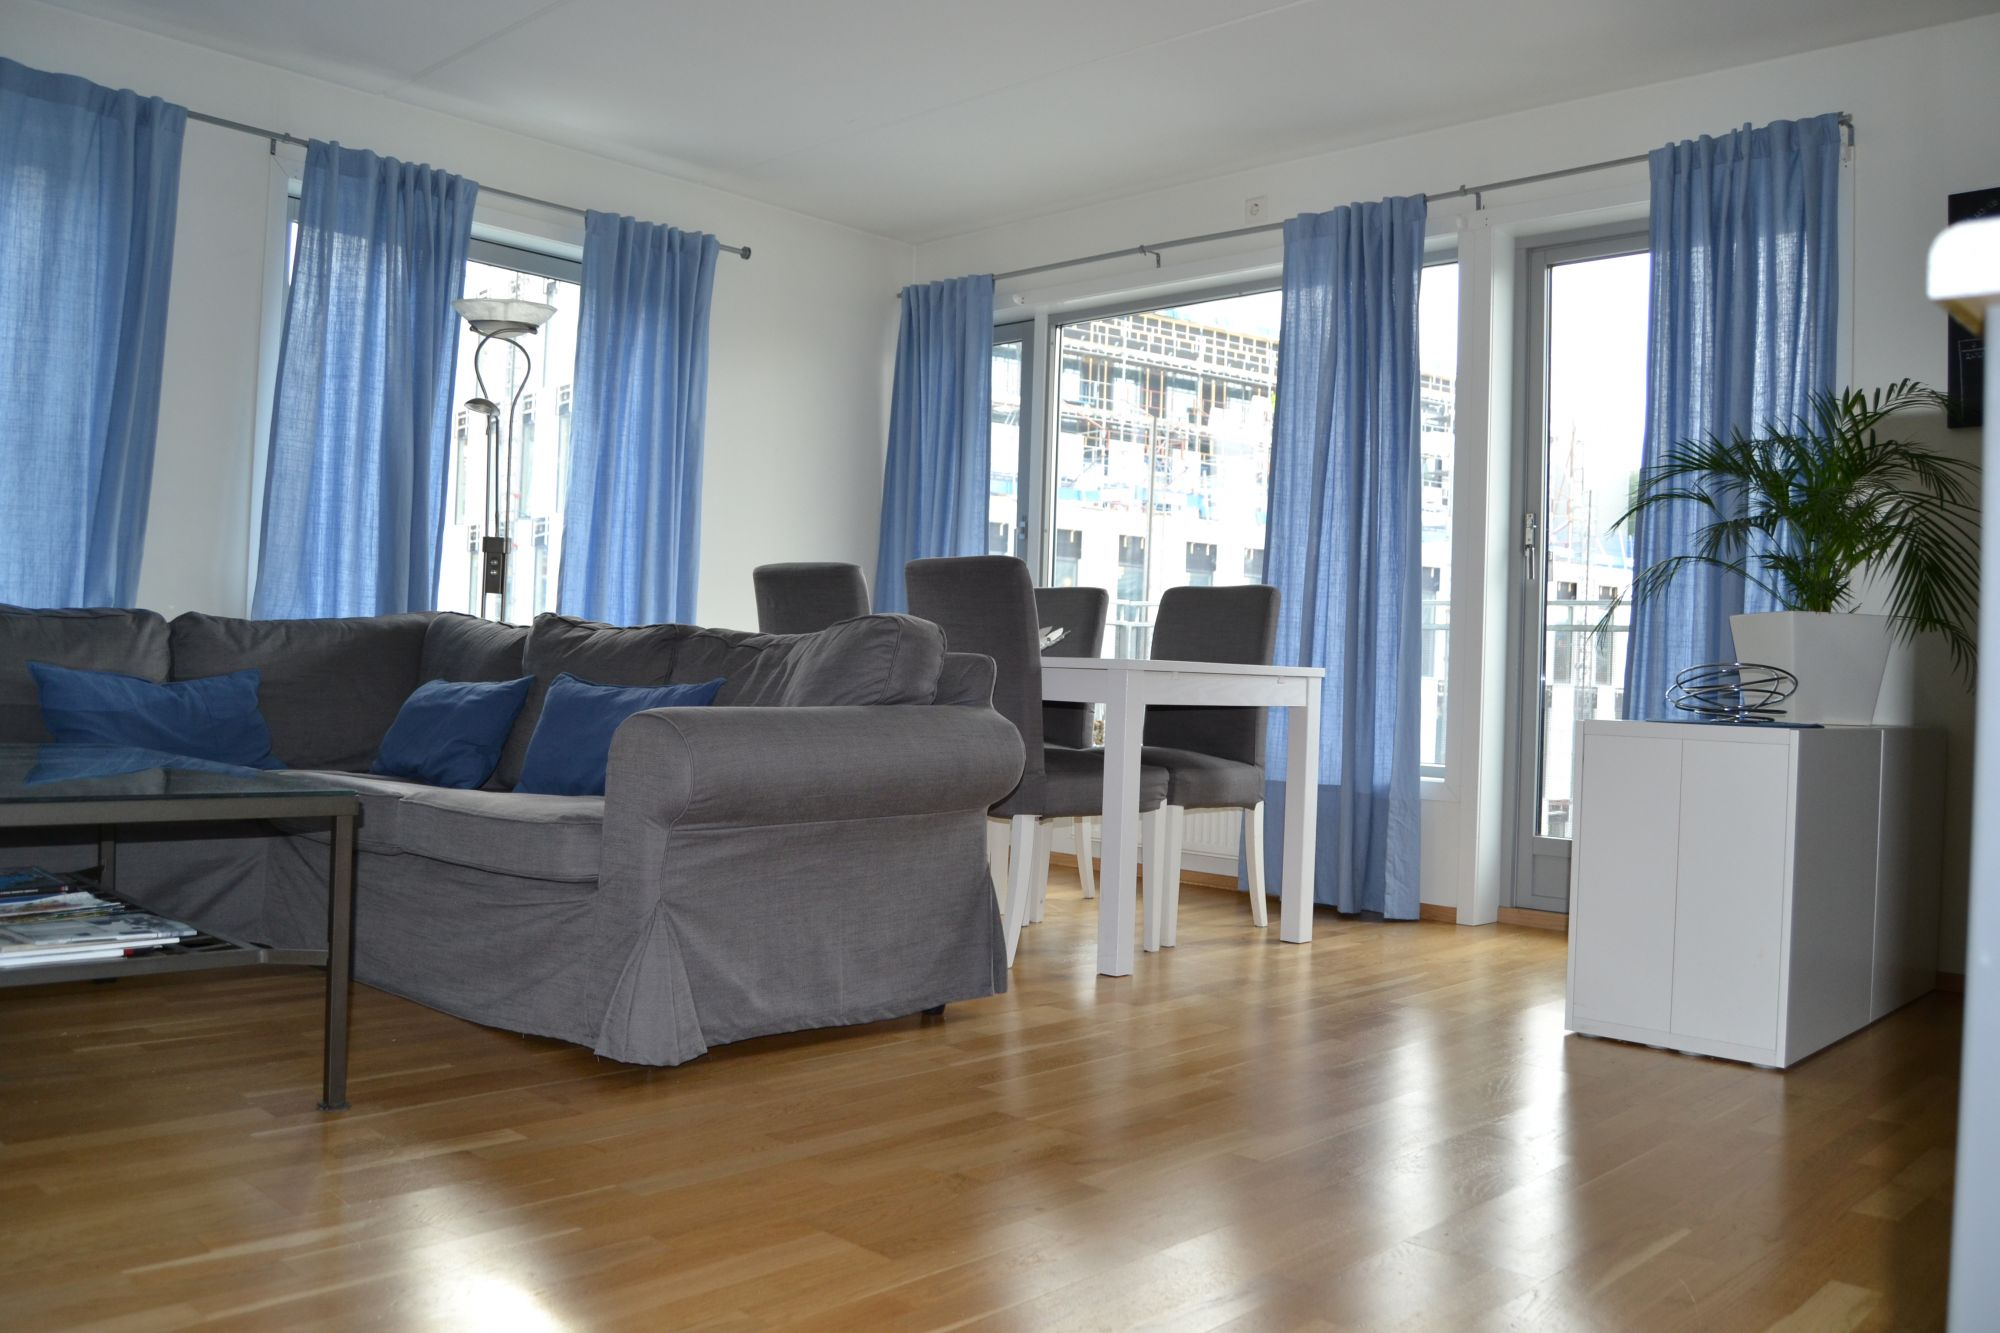 where can i rent a furnished apartment or room in oslo